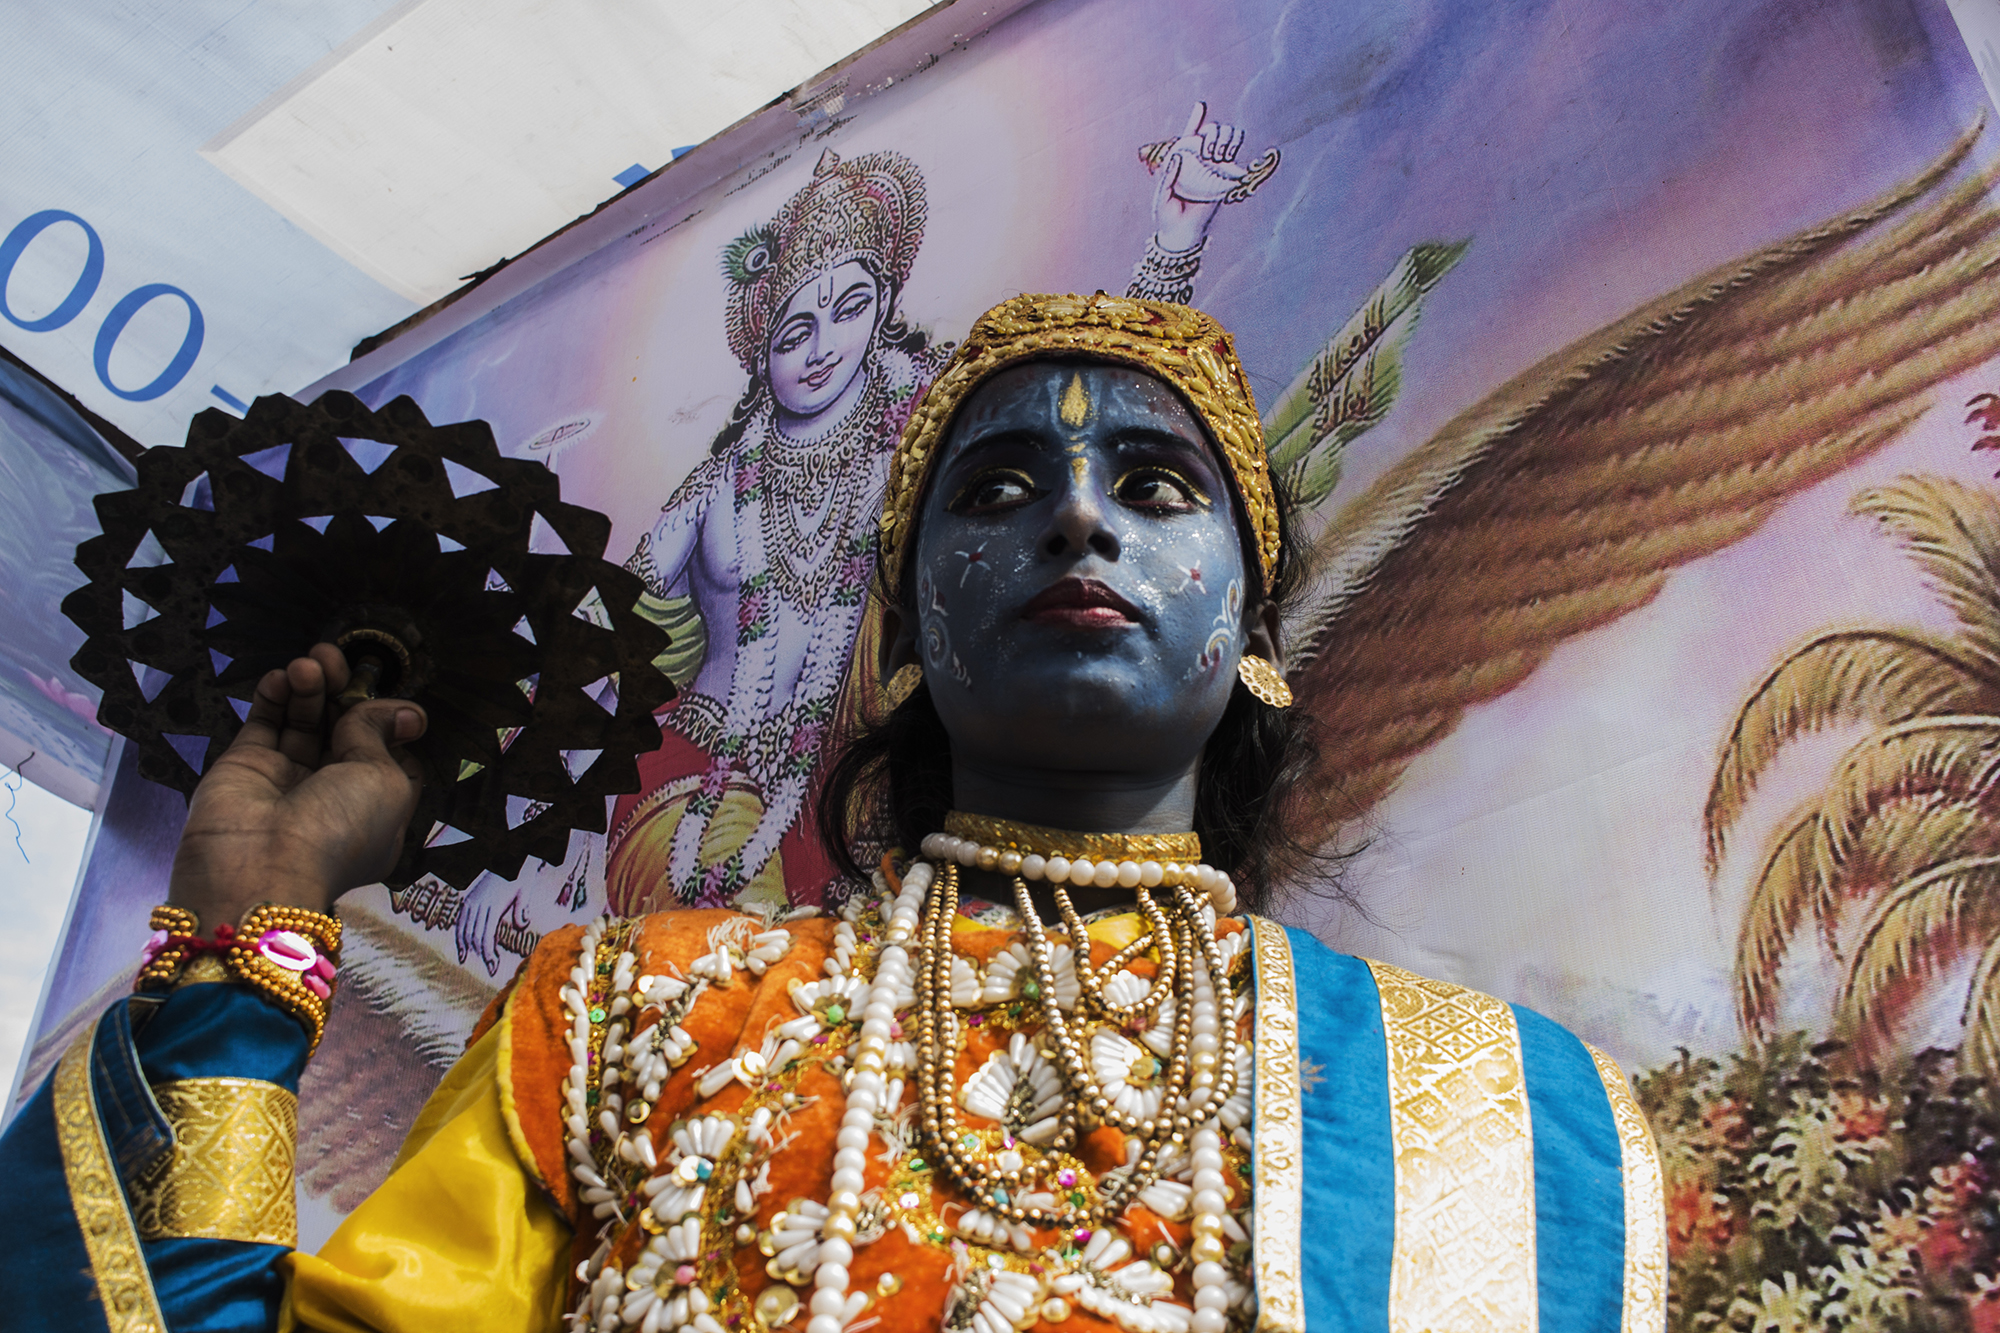 Young Devotee took disguise of God Bishnu in Chariot Festival and was standing in front of the image of Lord Vishnu